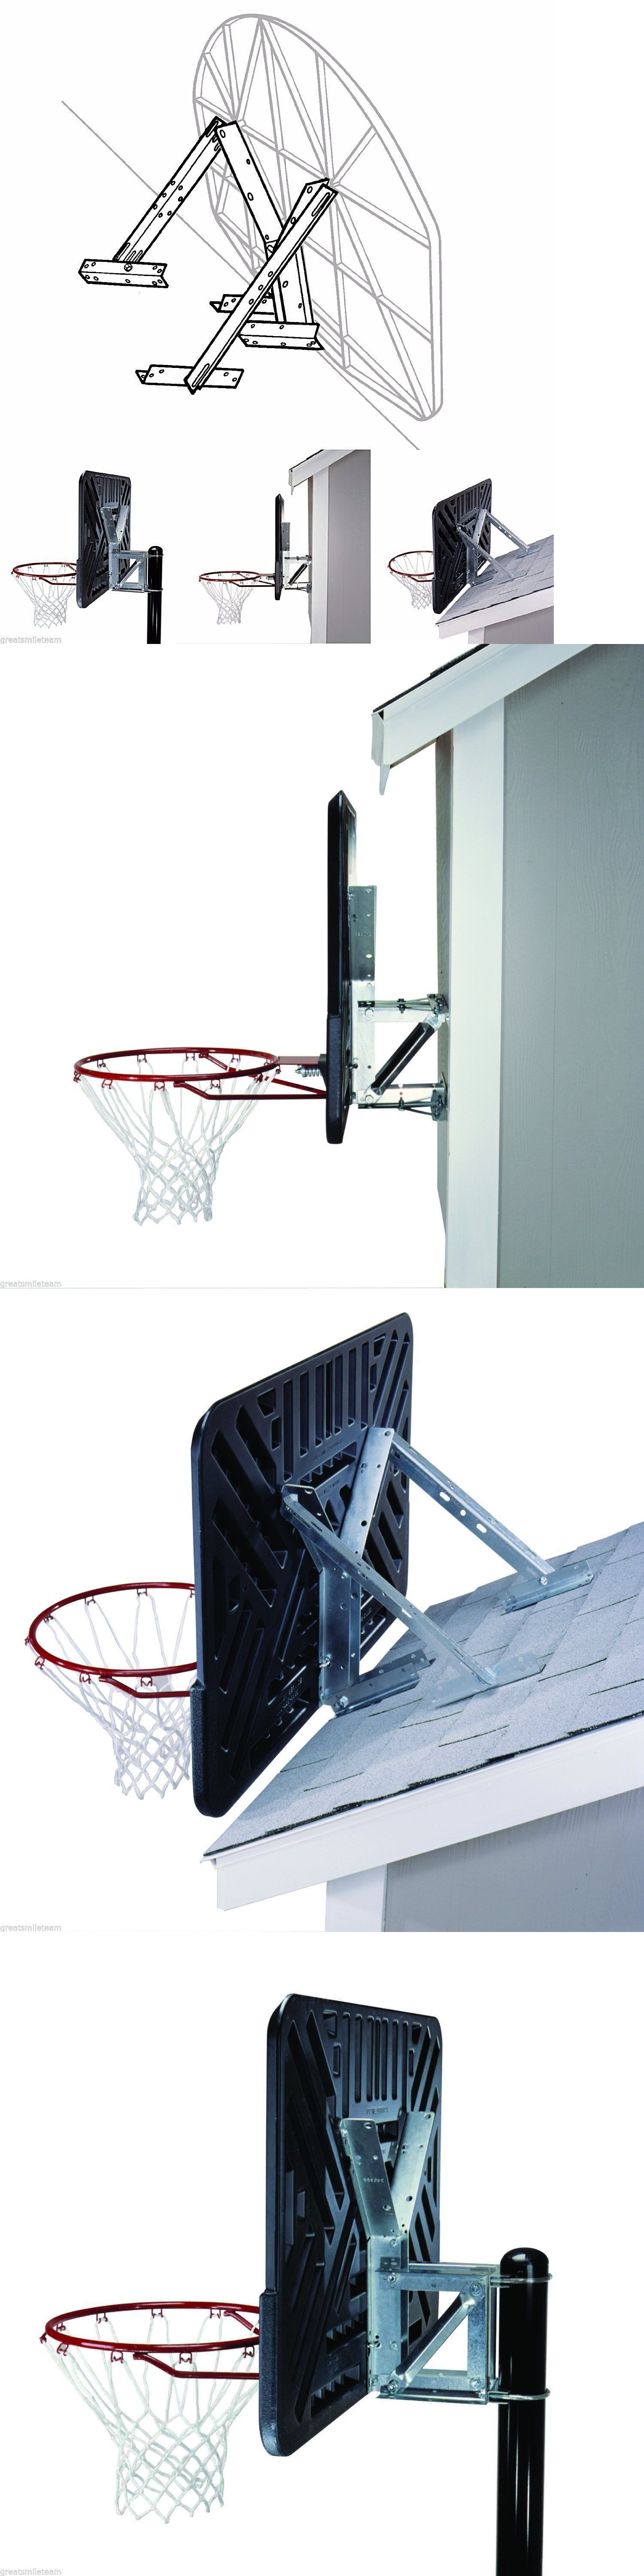 backboard systems 21196 no tax basketball hoop spalding 54